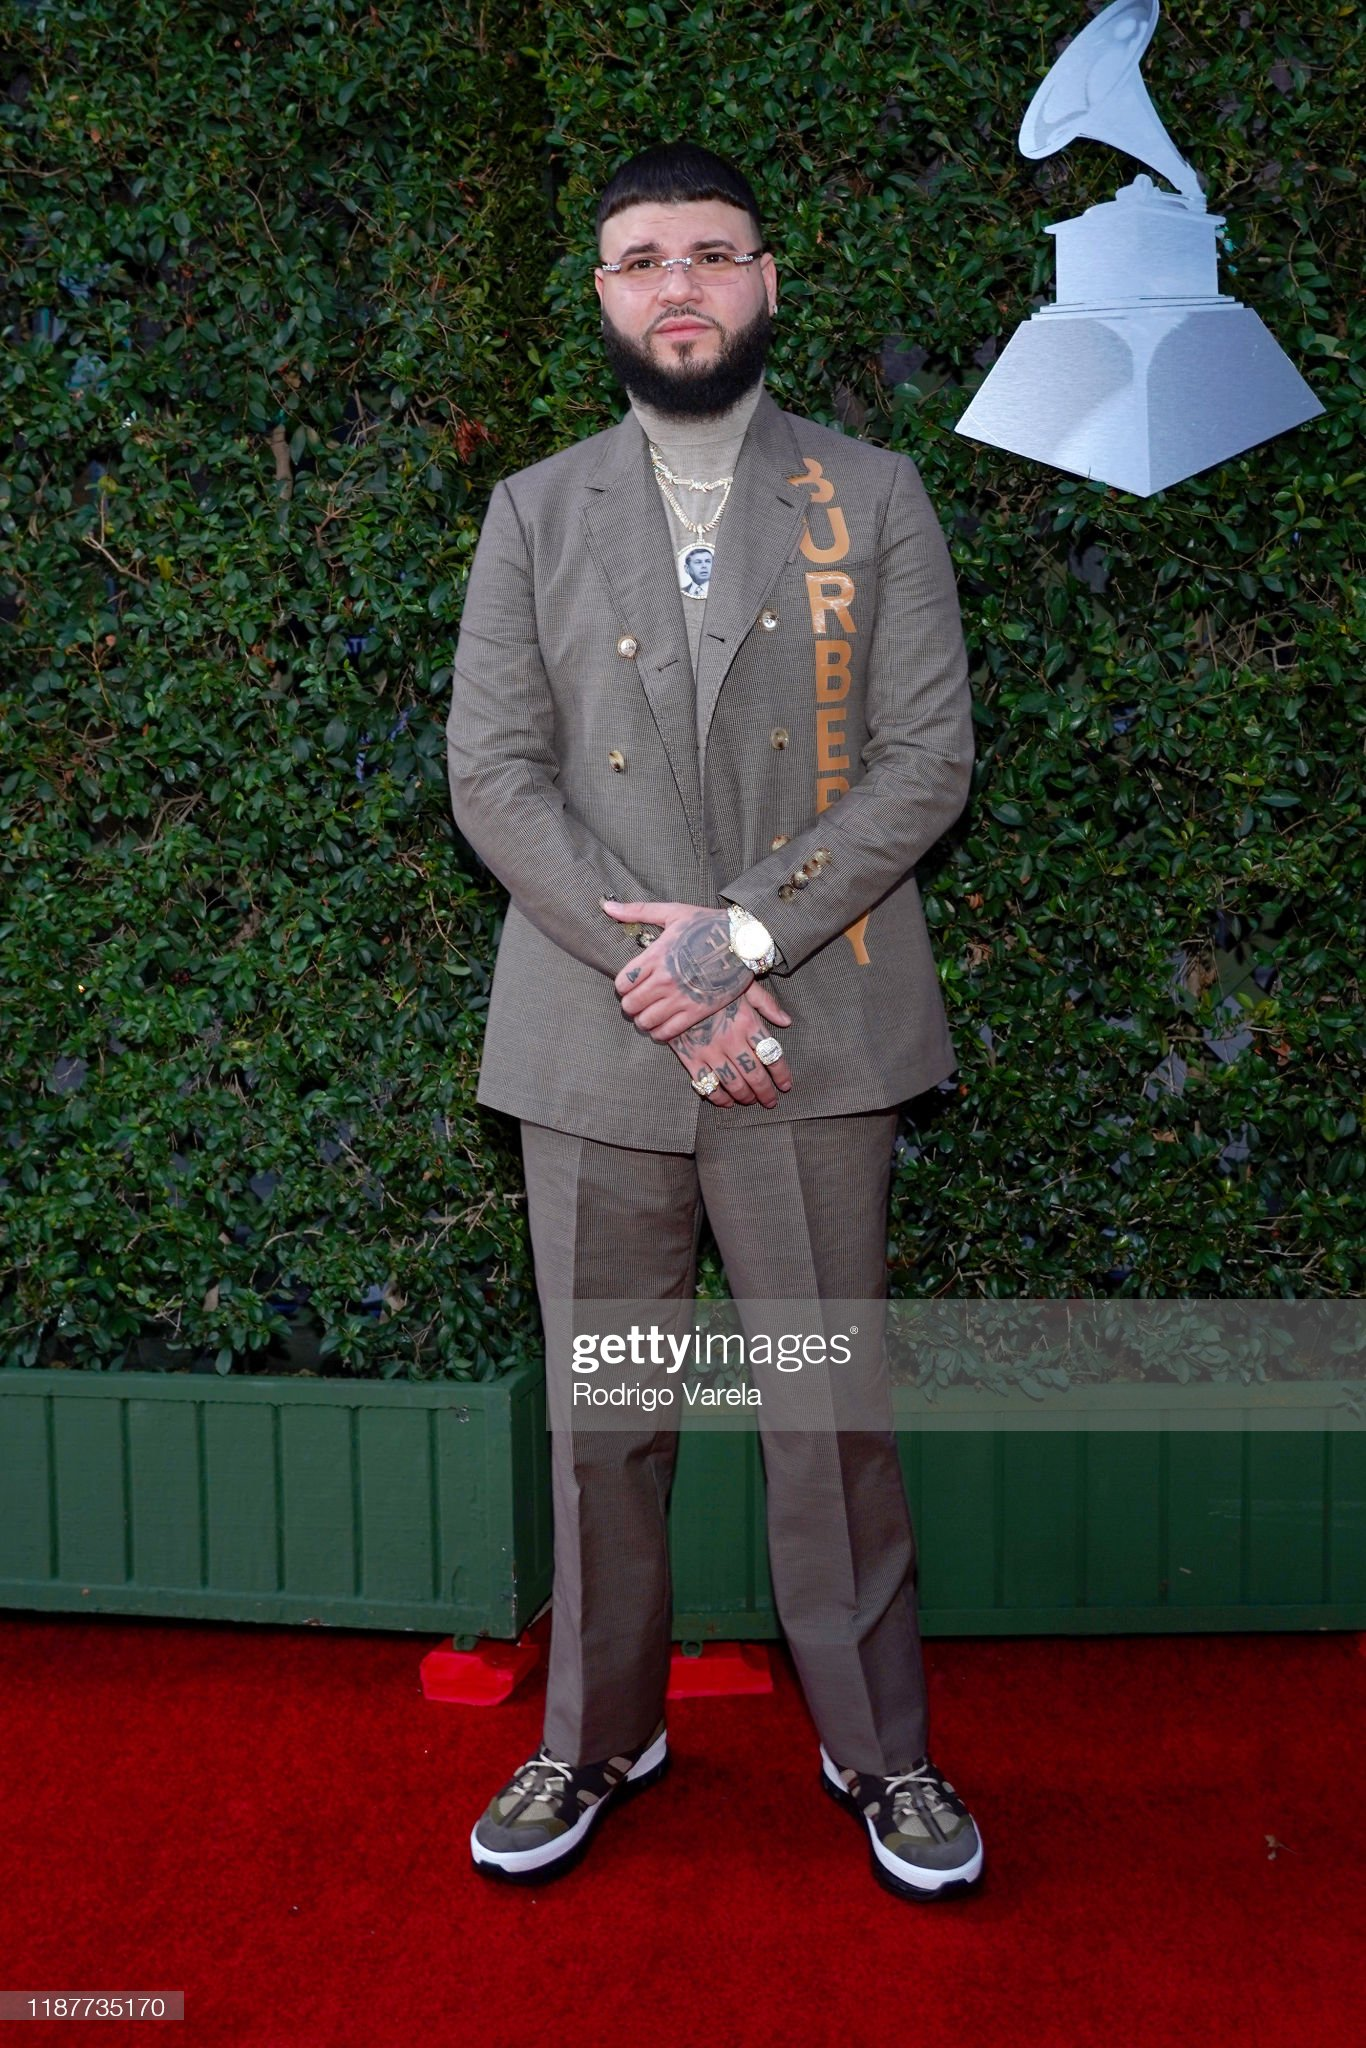 ¿Cuánto mide Farruko? - Estatura - Real height Farruko-attends-the-20th-annual-latin-grammy-awards-at-mgm-grand-on-picture-id1187735170?s=2048x2048